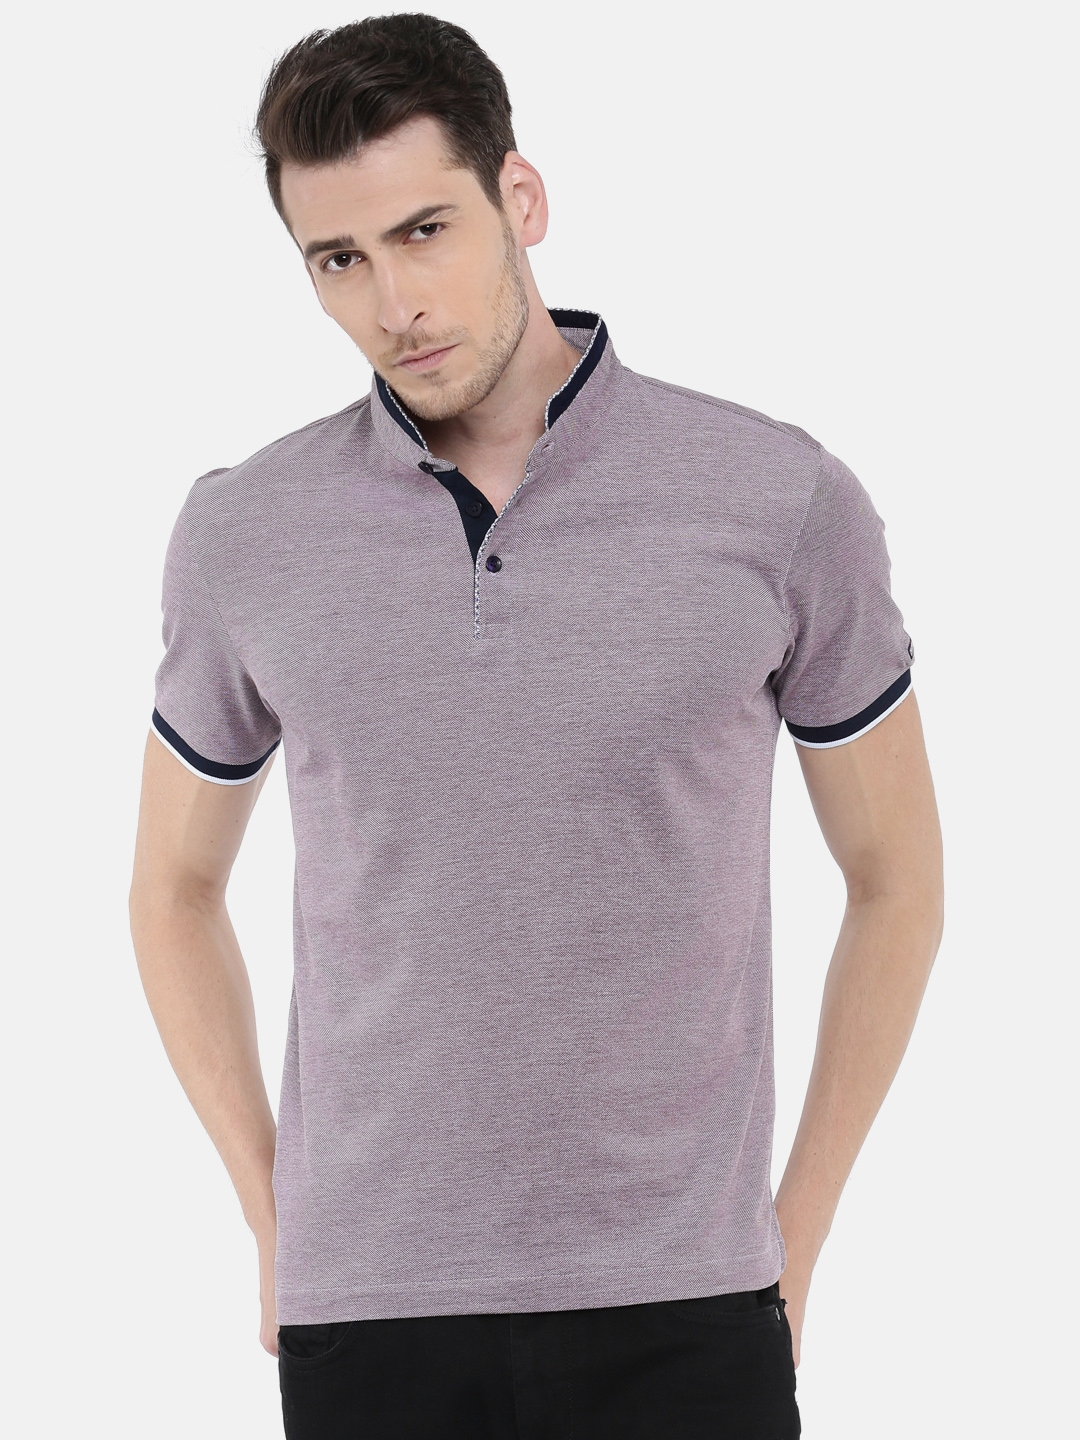 892567e4 Buy Arrow Sport Men Purple Self Design Mandarin Collar T Shirt ...